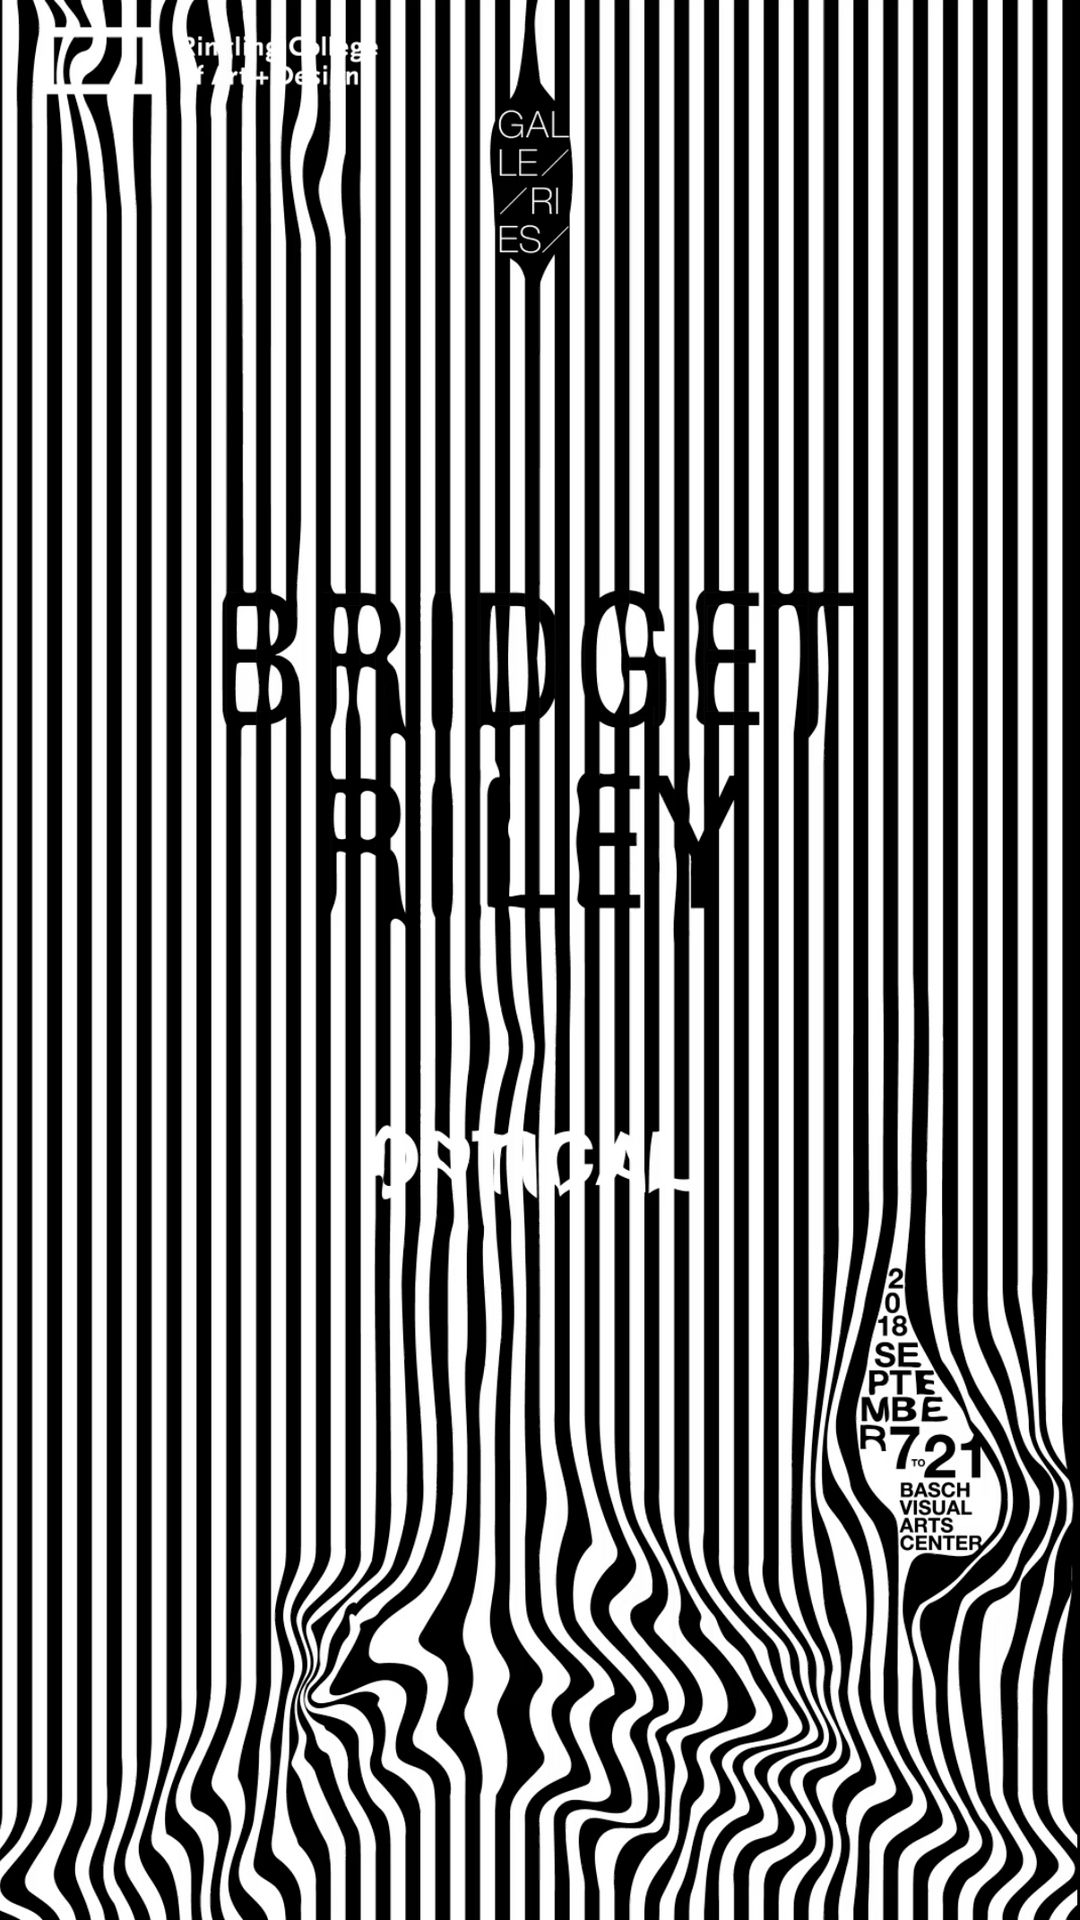 Bridget Riley Poster